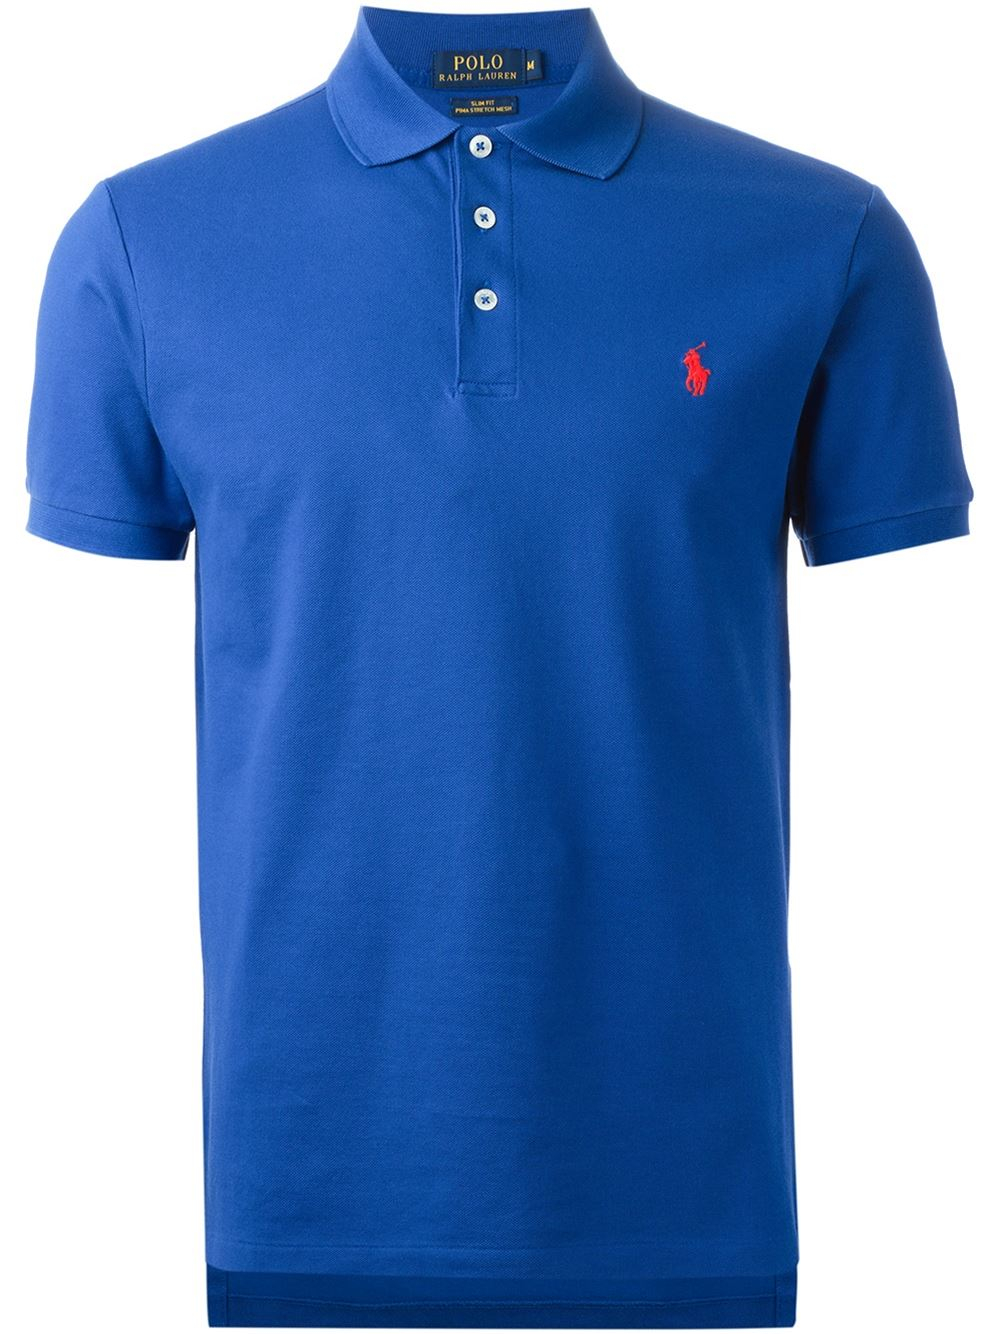 Polo ralph lauren embroidered logo polo shirt in blue for for Polo shirts with embroidery